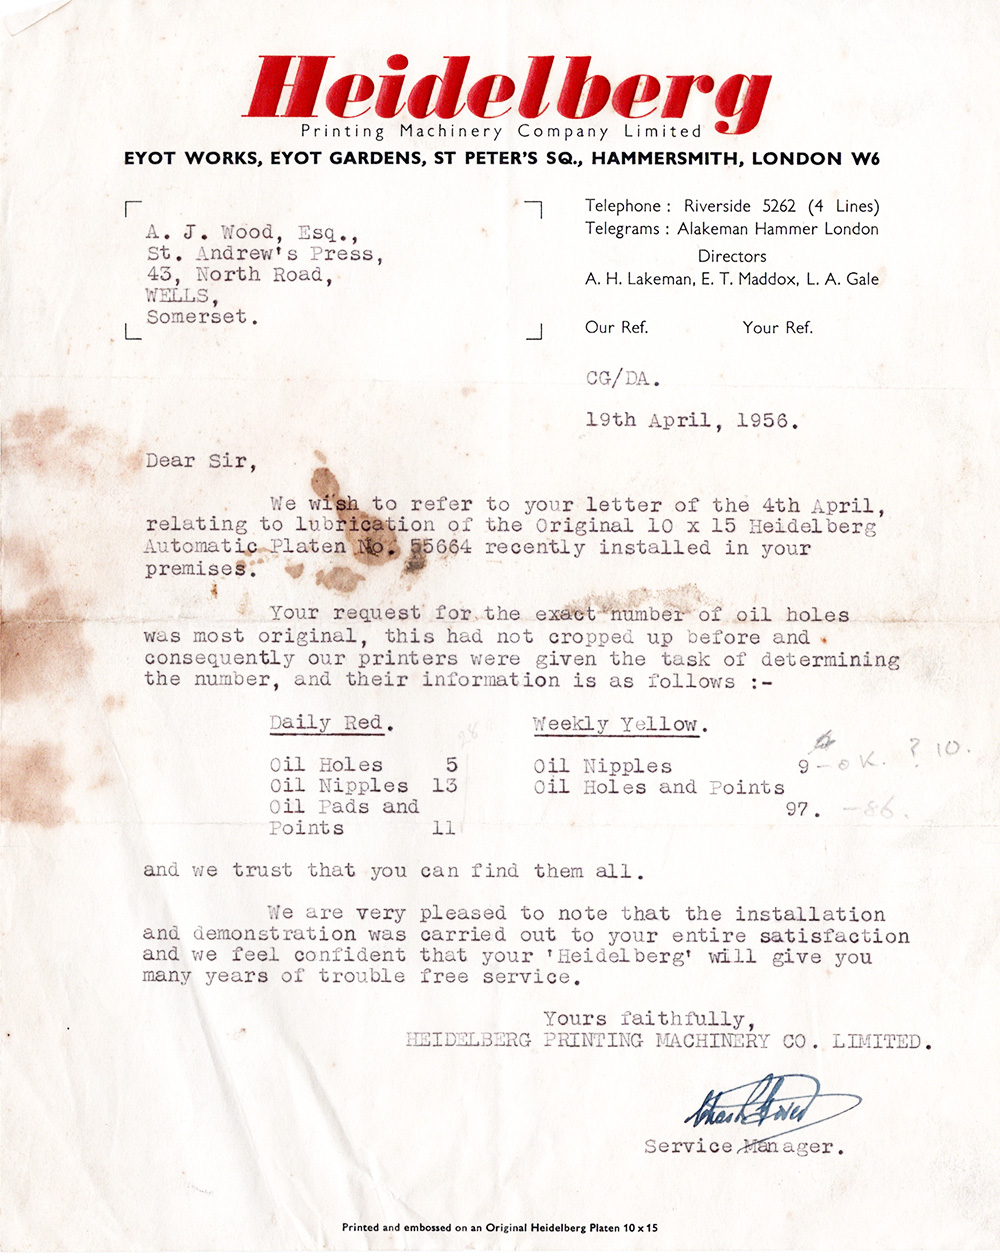 A stickler for detail:  The Heidelberg Service Manager's reply to Arthur's 'most original' enquiry! (Click to enlarge.)